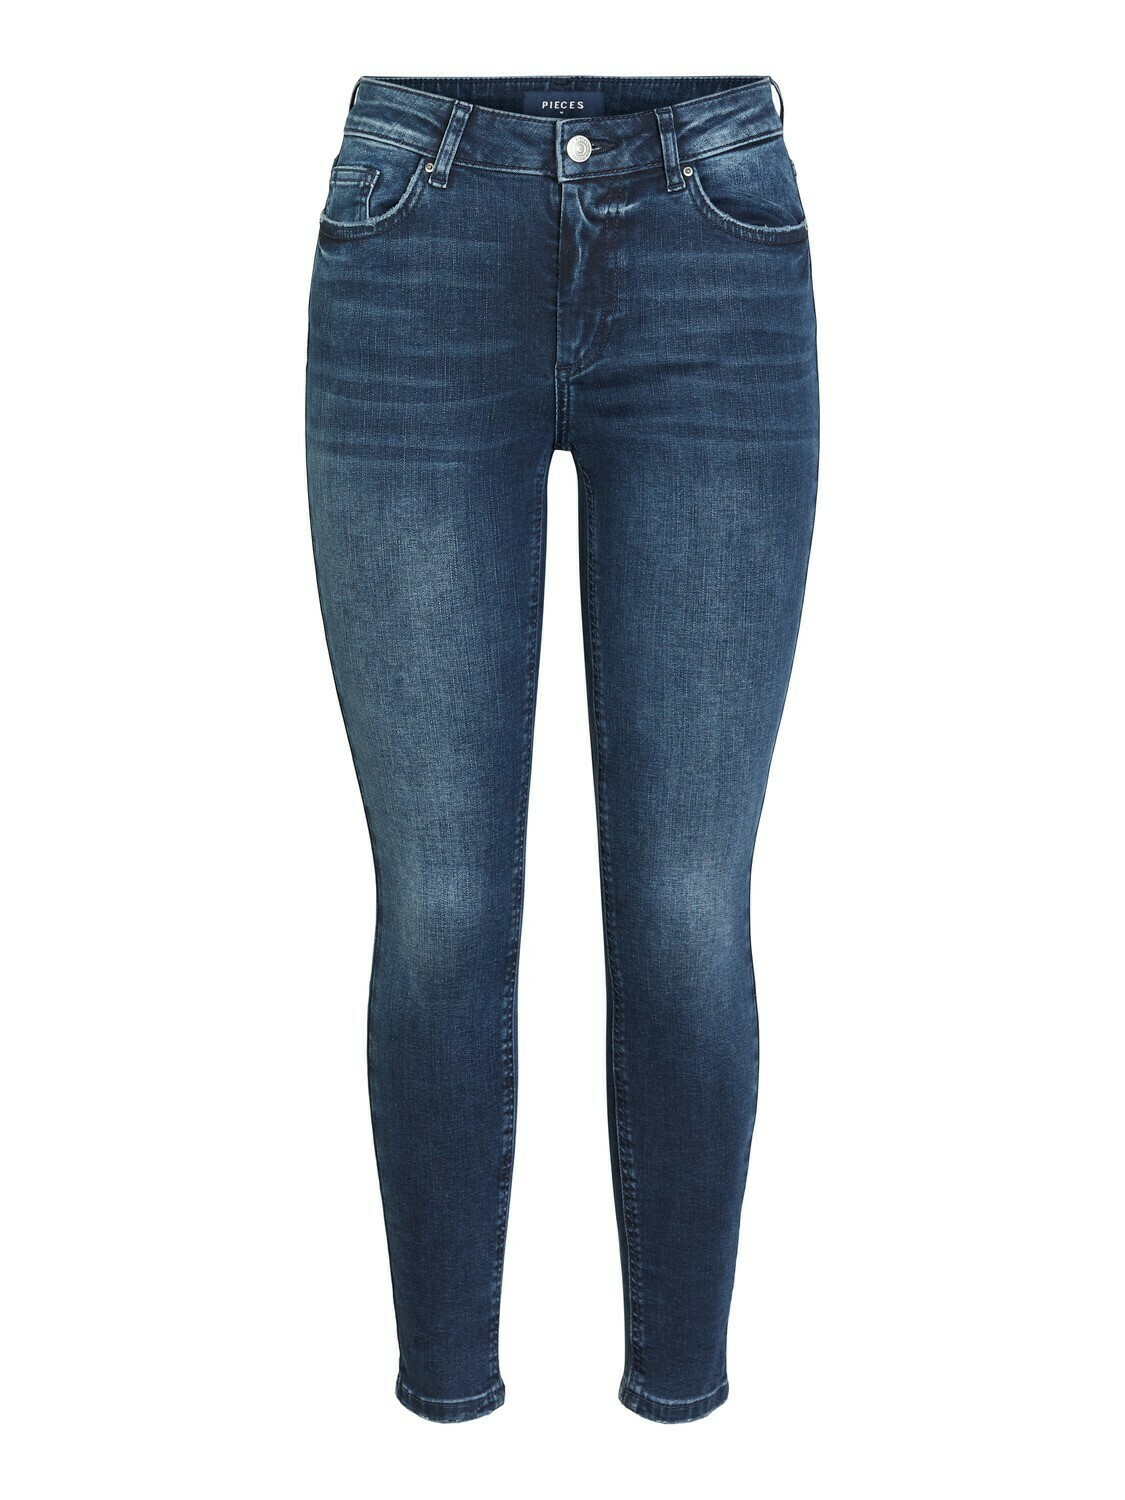 Broek - DELLY- jeans skinny donkerblauw - cropped